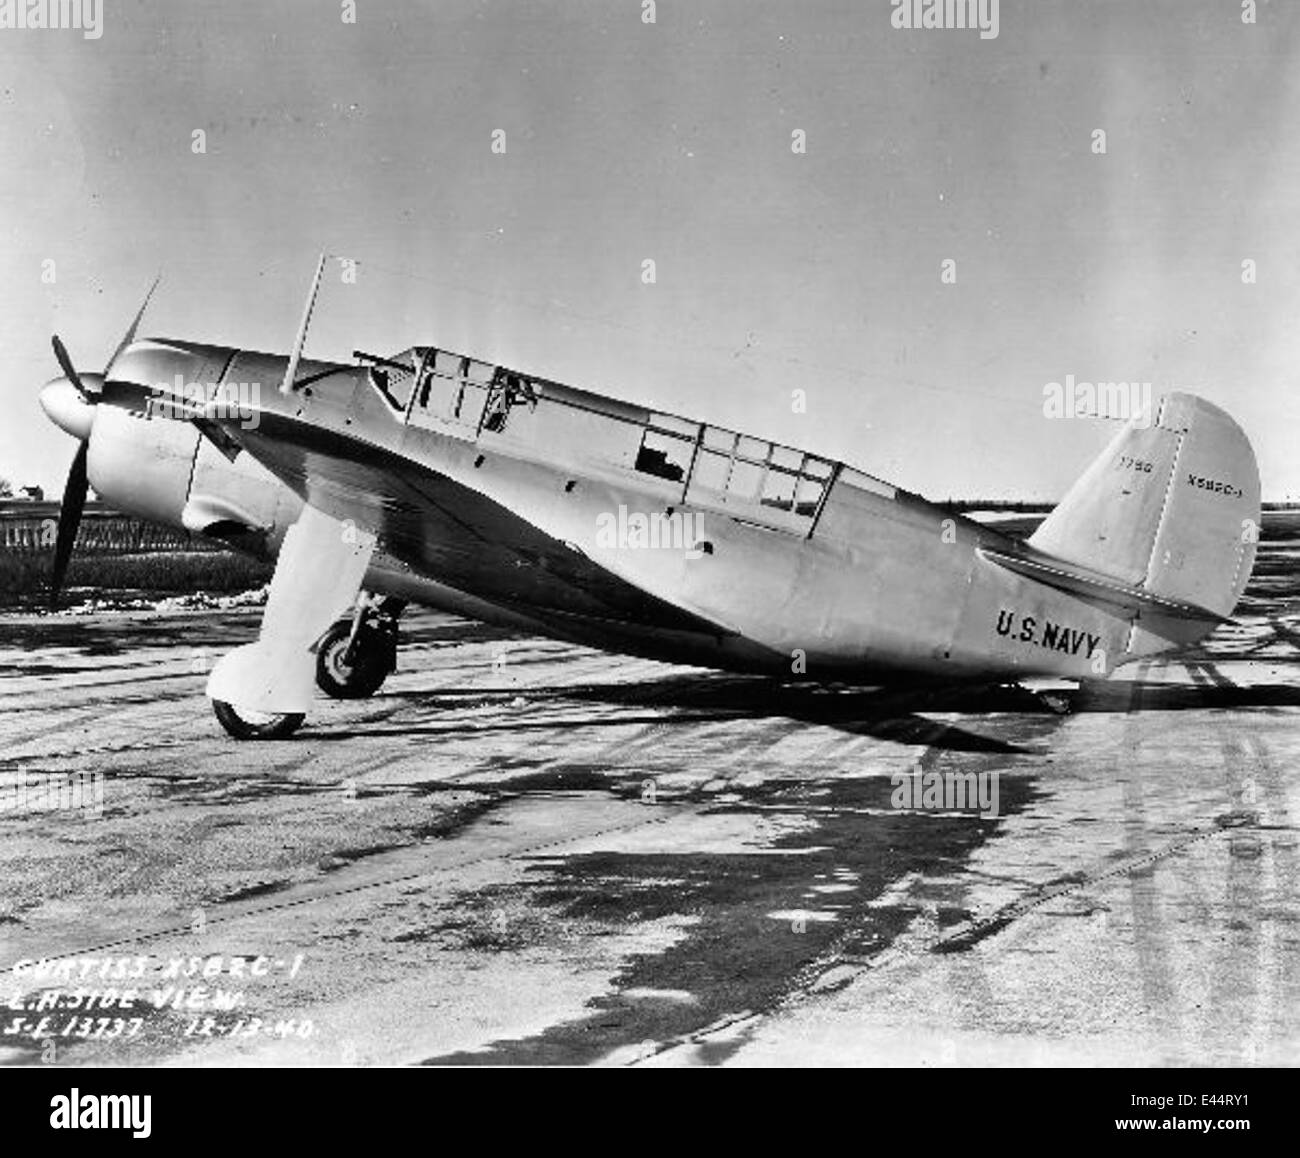 Curtiss XSB2C1 grd - Stock Image